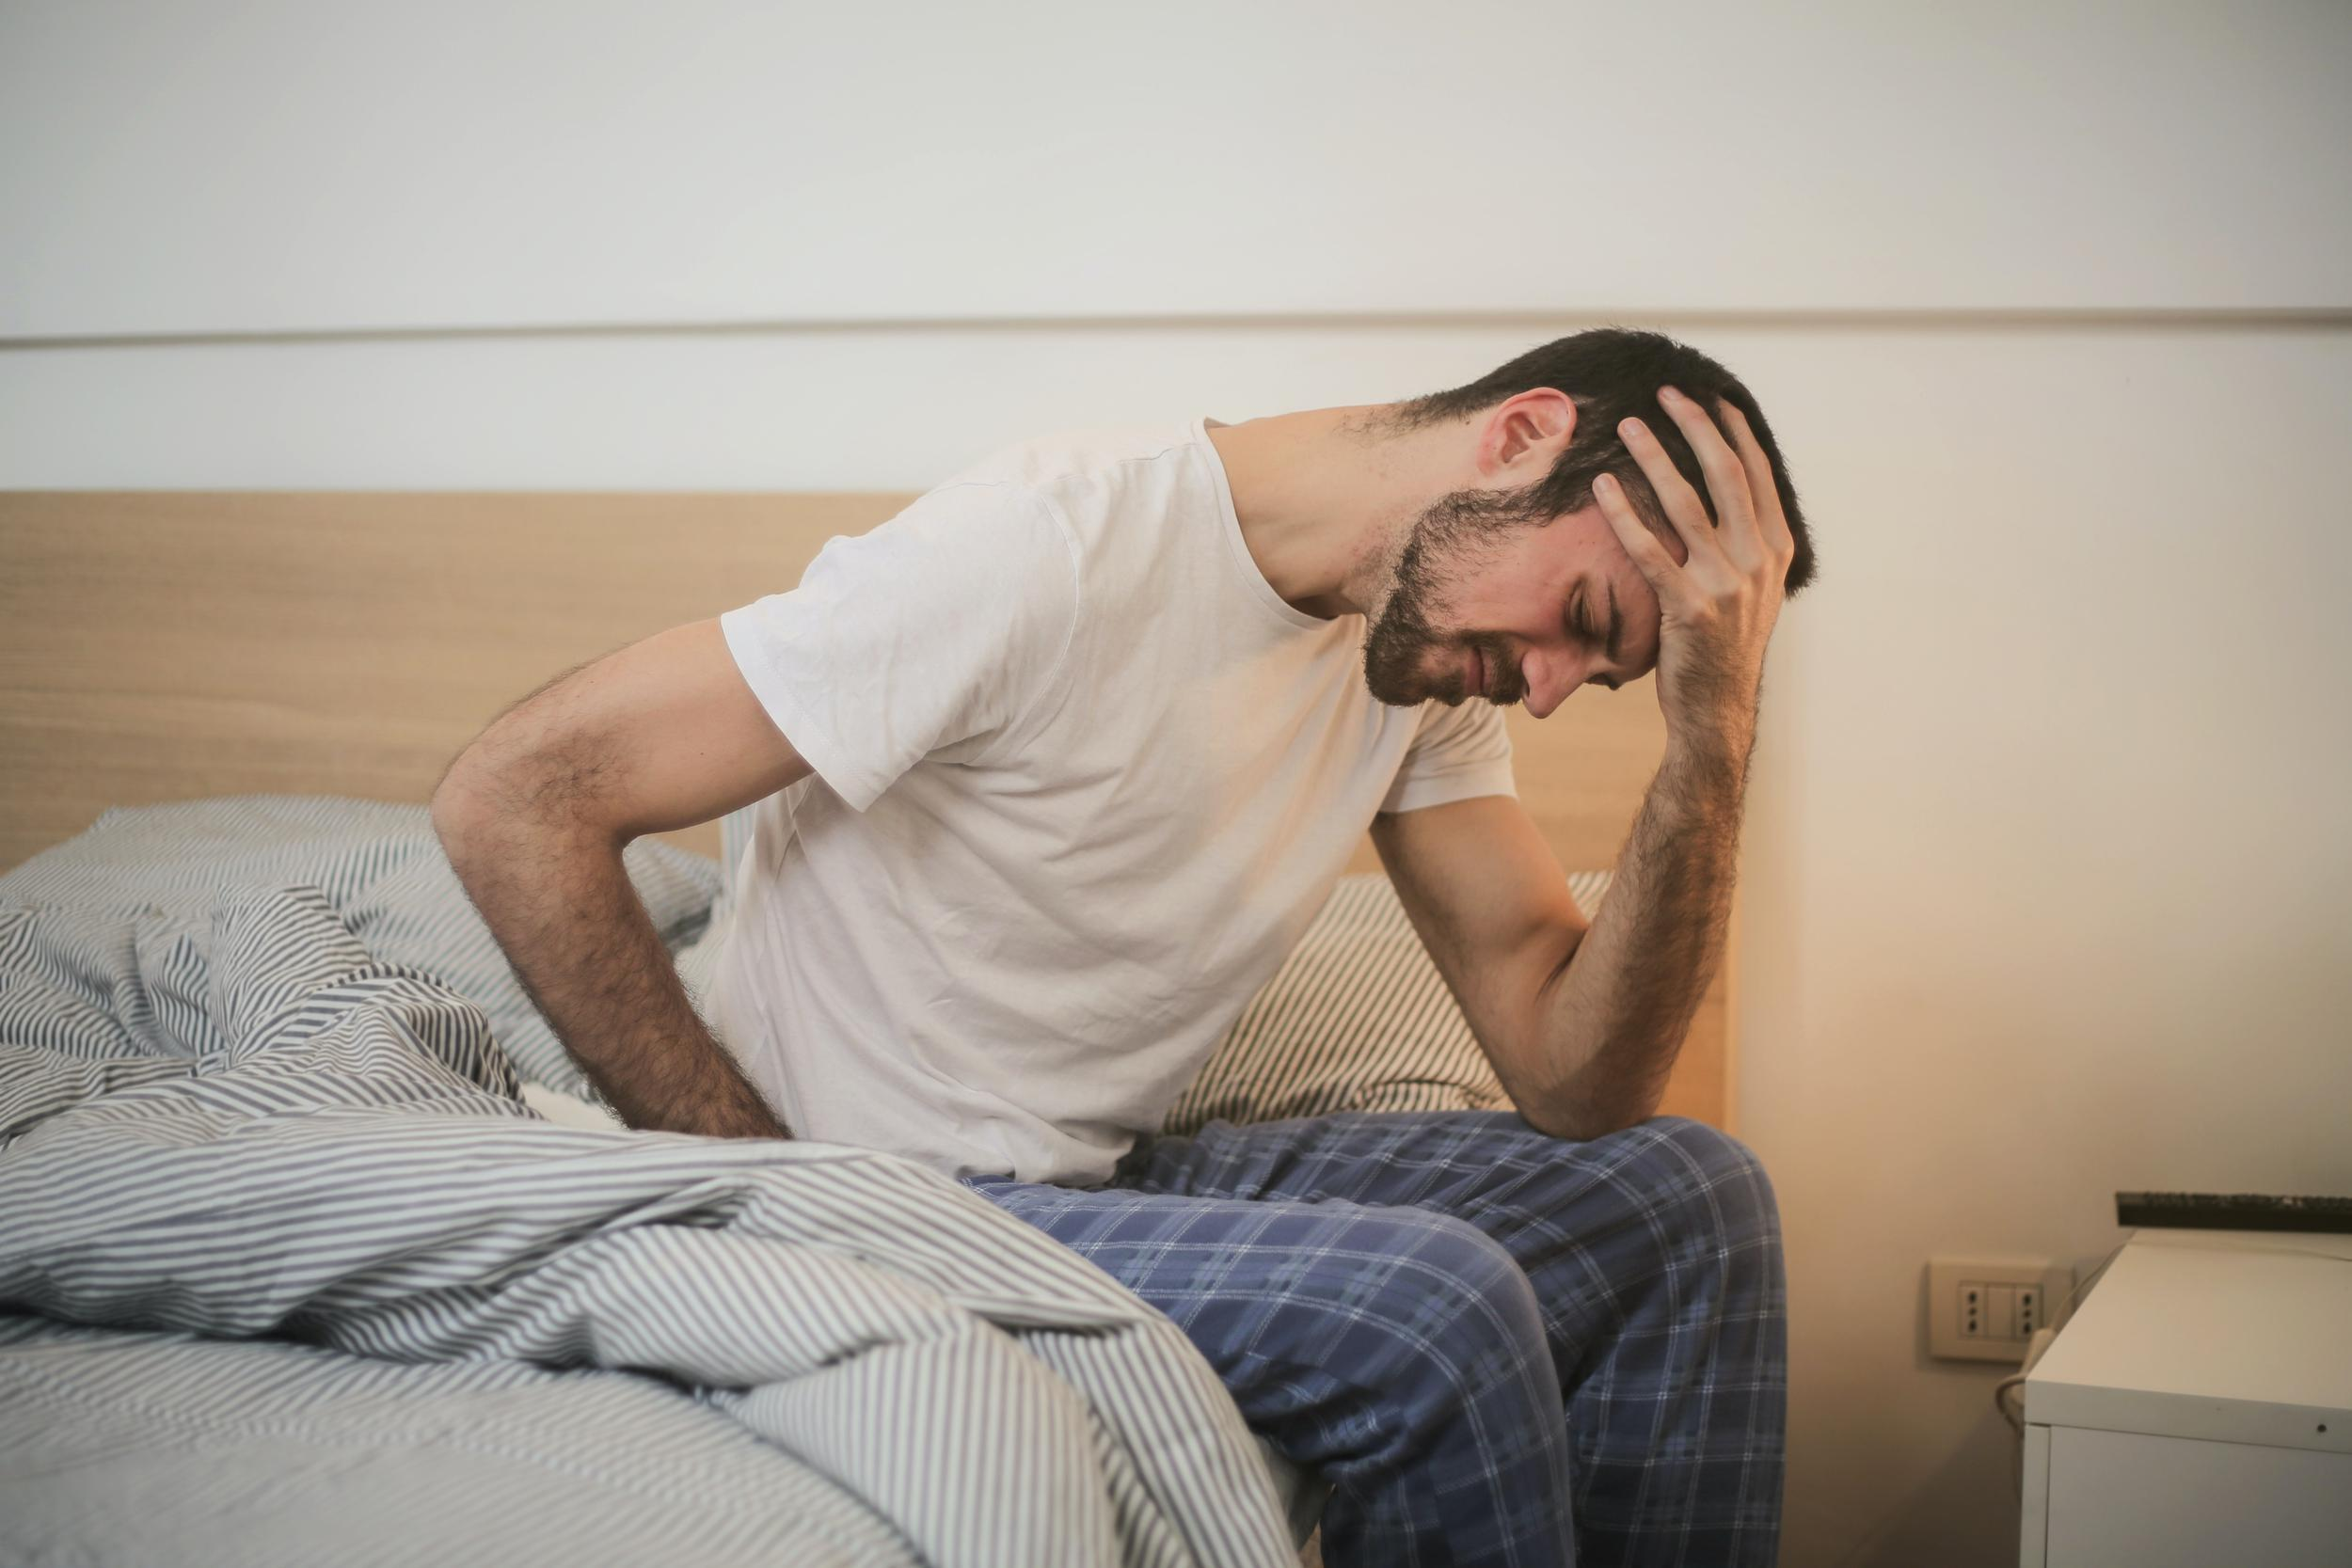 Corrective wellness chiropractic care can help resolve chronic fatigue.